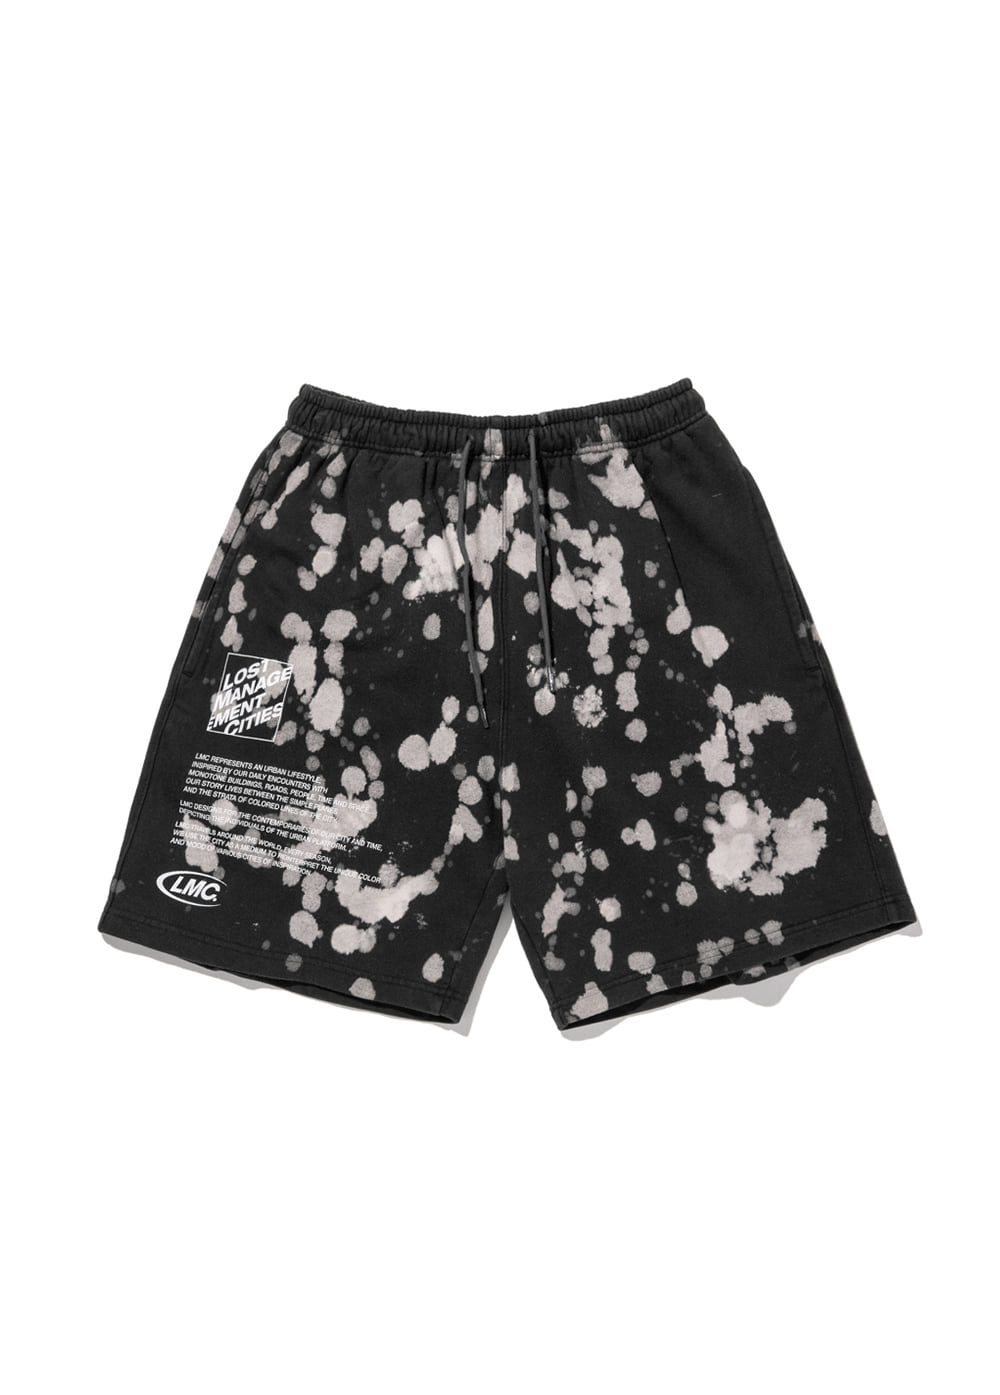 LMC EXPL BLEACH SWEAT SHORTS black